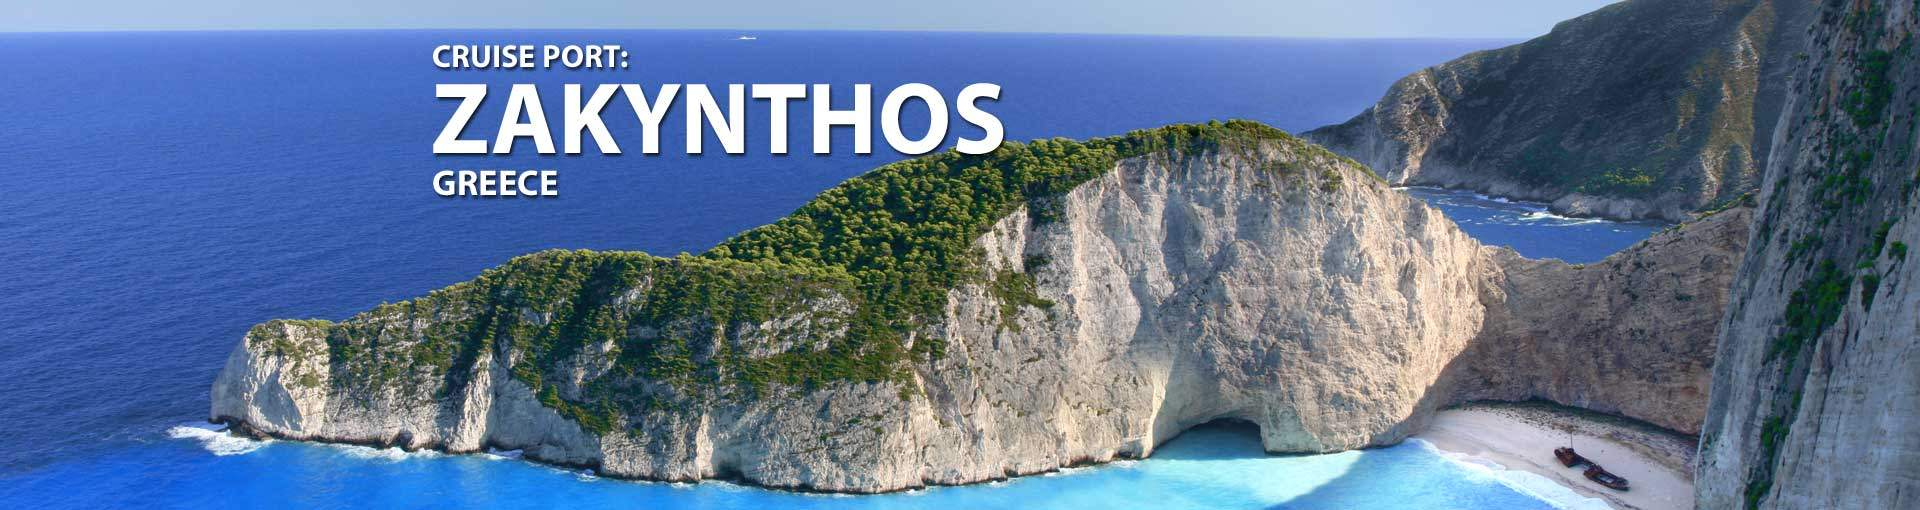 Cruises to Zakynthos, Greece